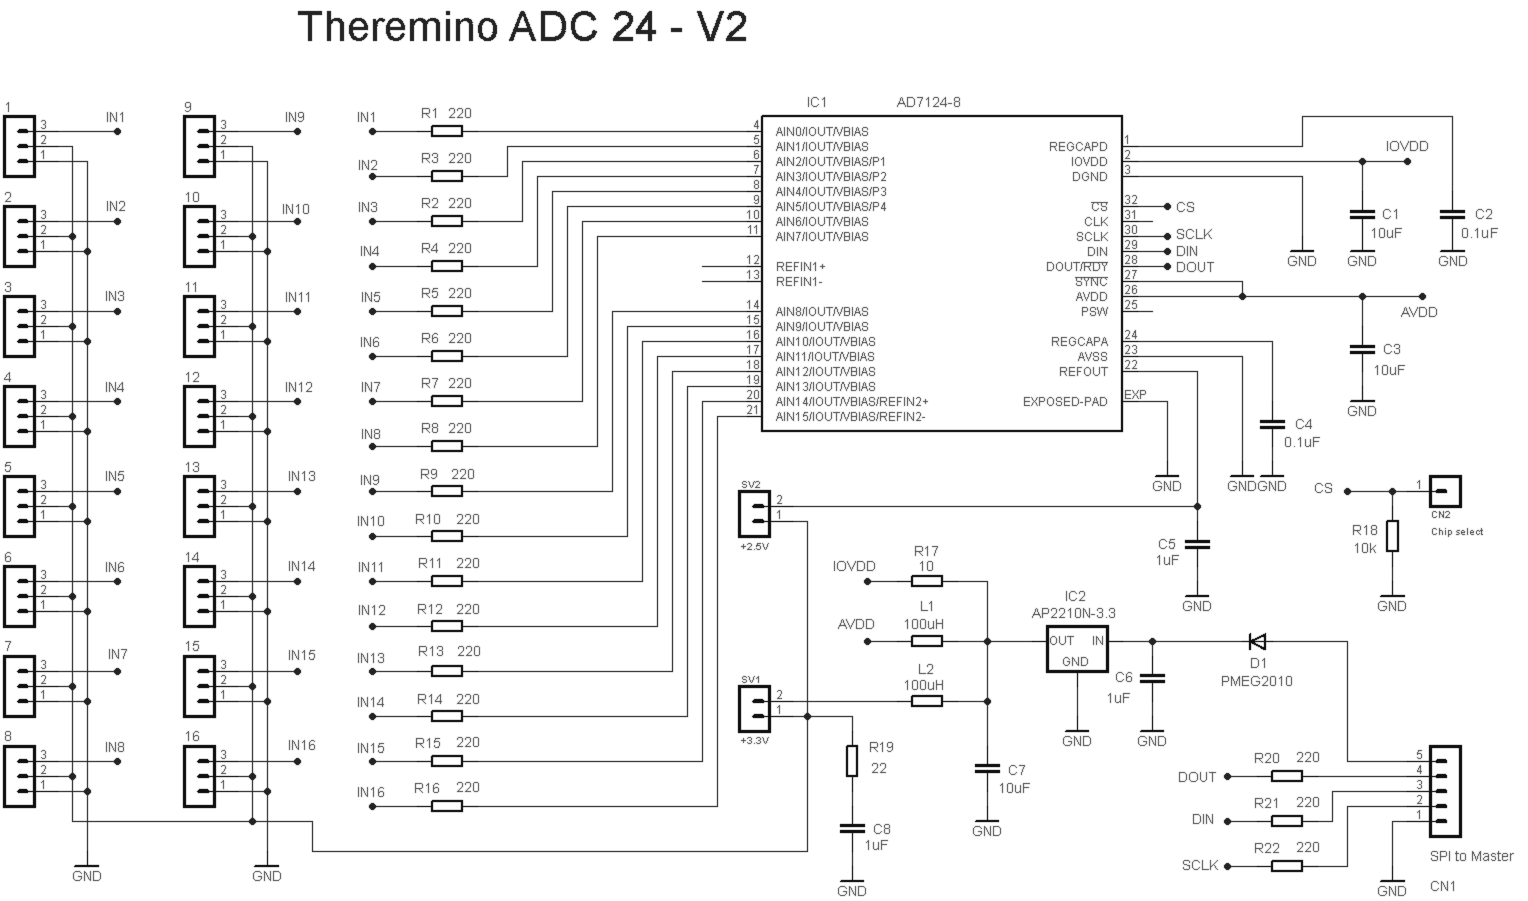 Theremino - ADC 24 bisschen